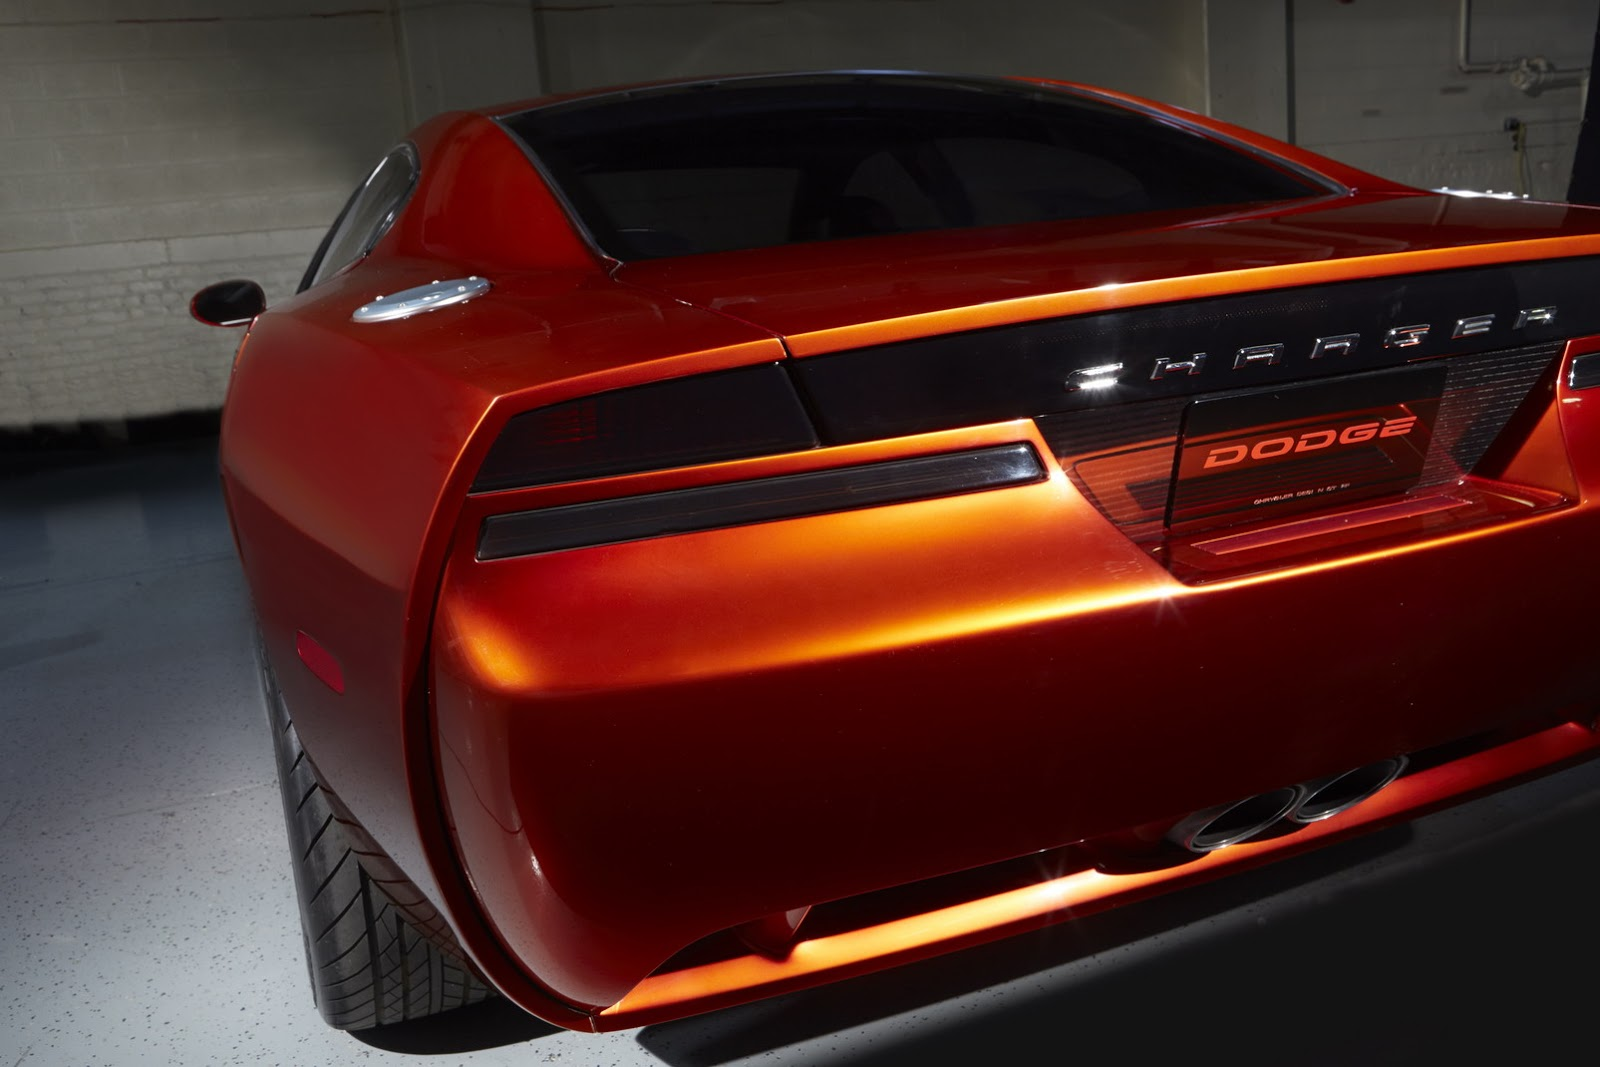 Next Dodge Charger Not Expected Before 2020 Initial